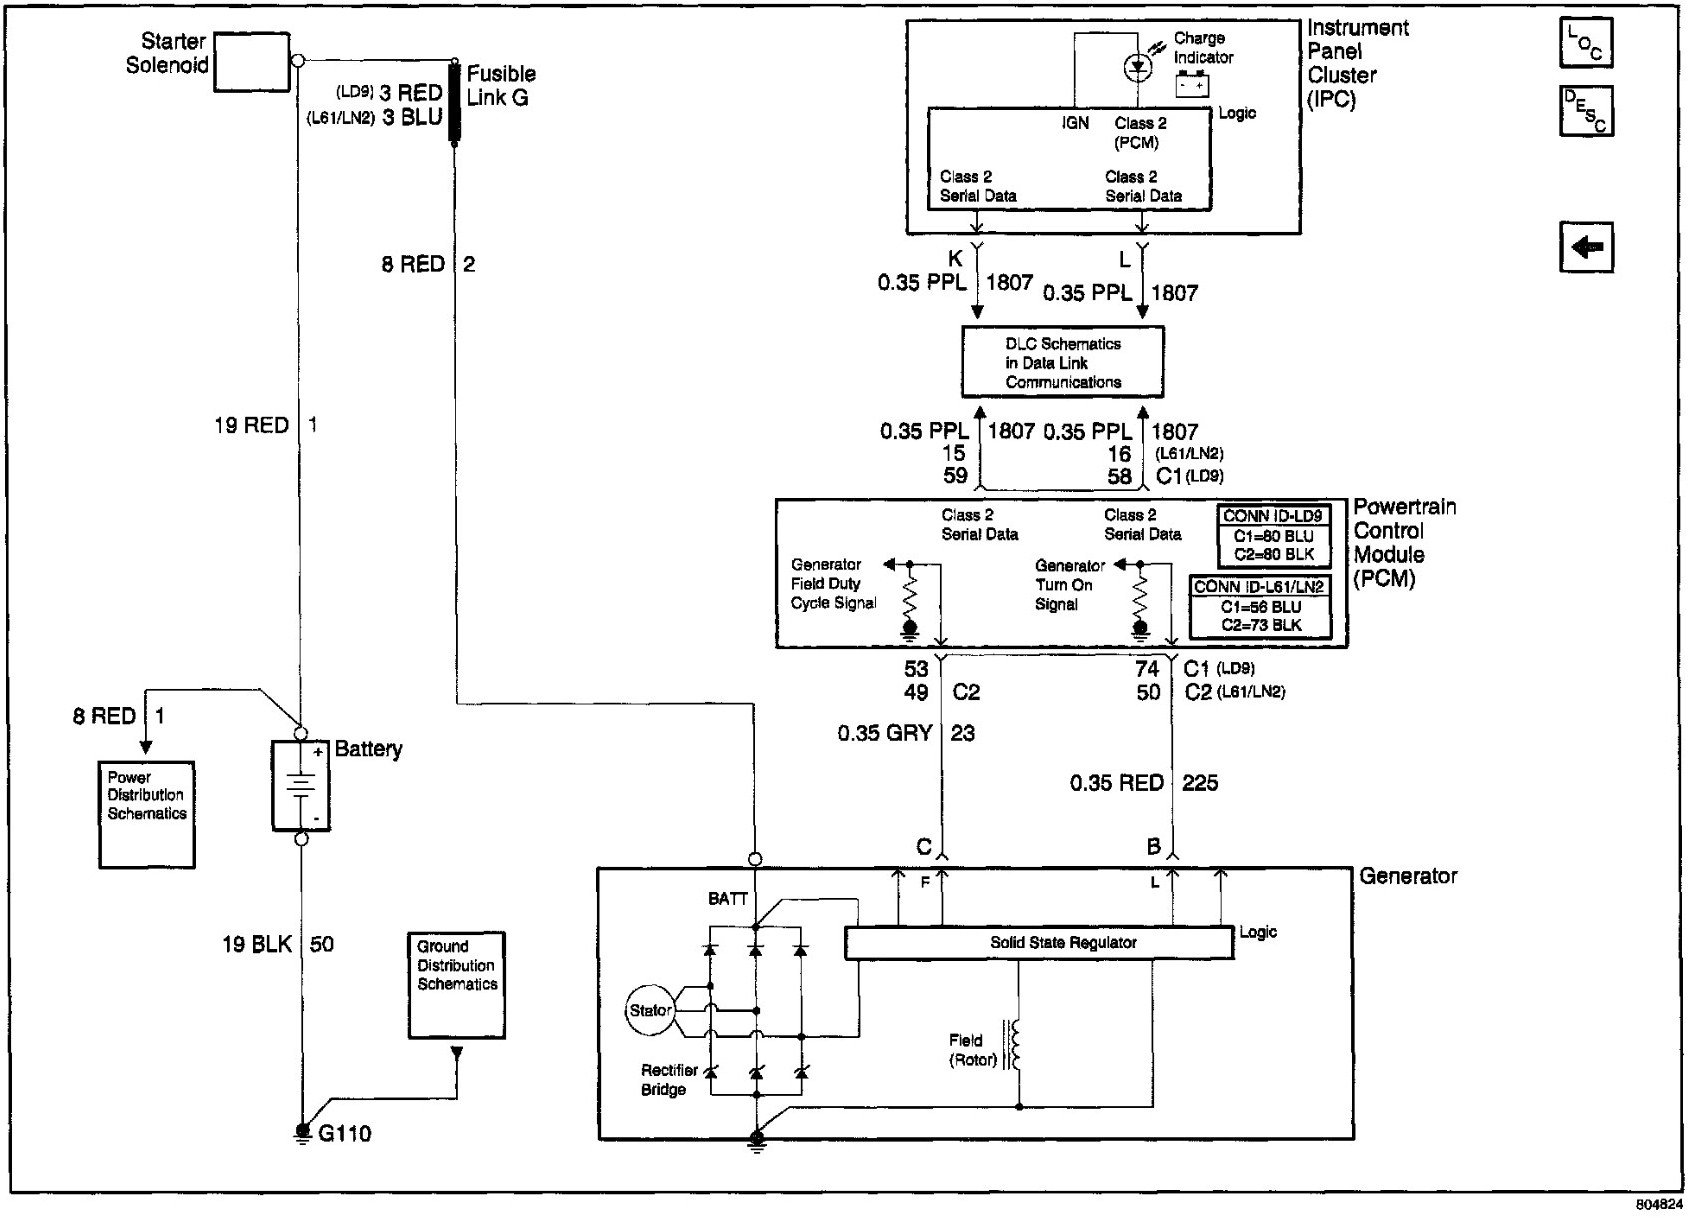 Wiring Diagrams For 2002 Chevy Cavalier - Wiring Diagram Direct year-secure  - year-secure.siciliabeb.it | Wiring Diagram For 2002 Chevy Cavalier |  | year-secure.siciliabeb.it